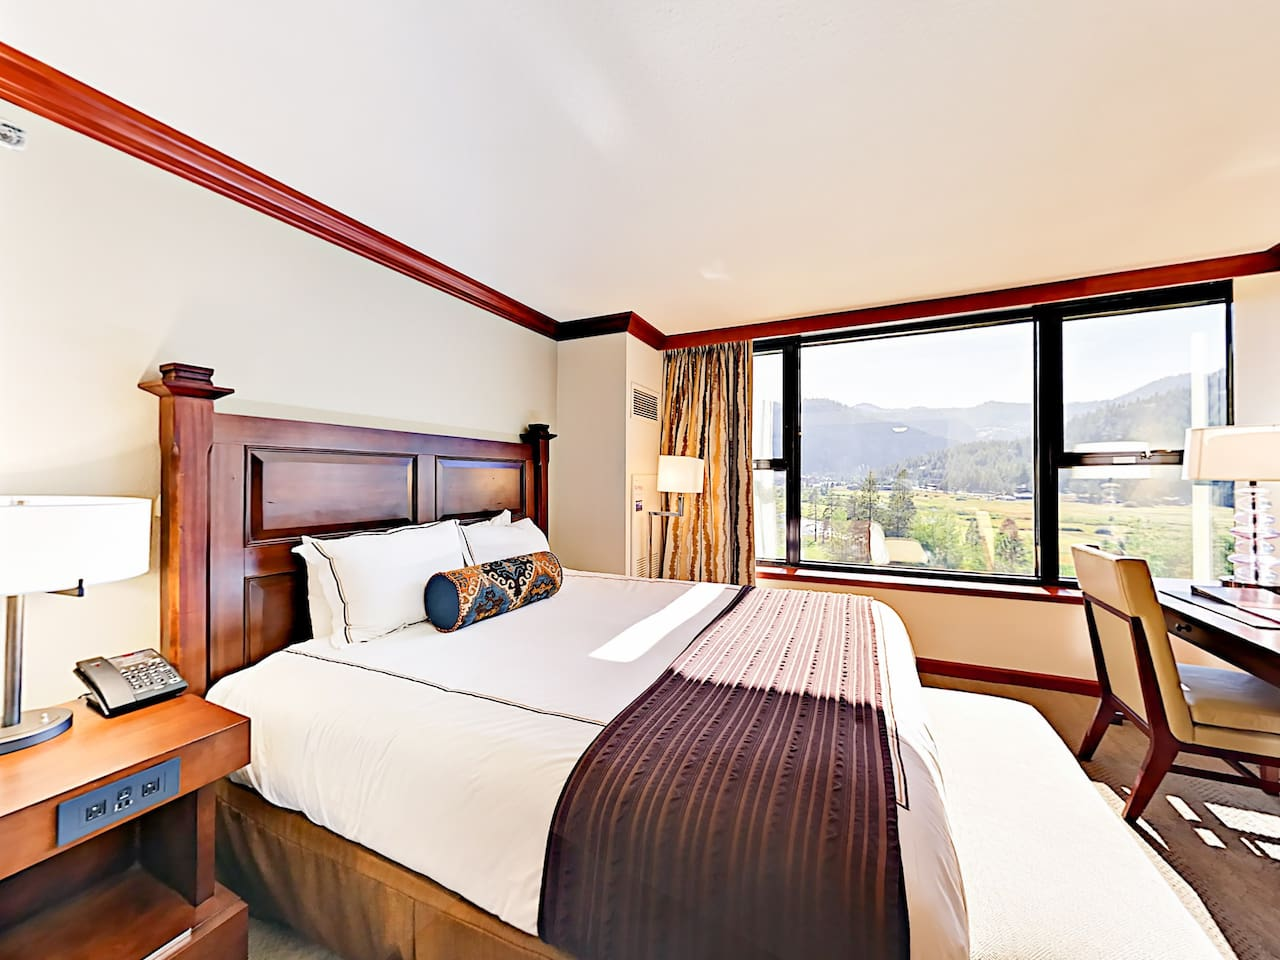 Welcome to your luxe accommodations in Olympic Valley! Professionally managed by TurnKey Vacation Rentals.